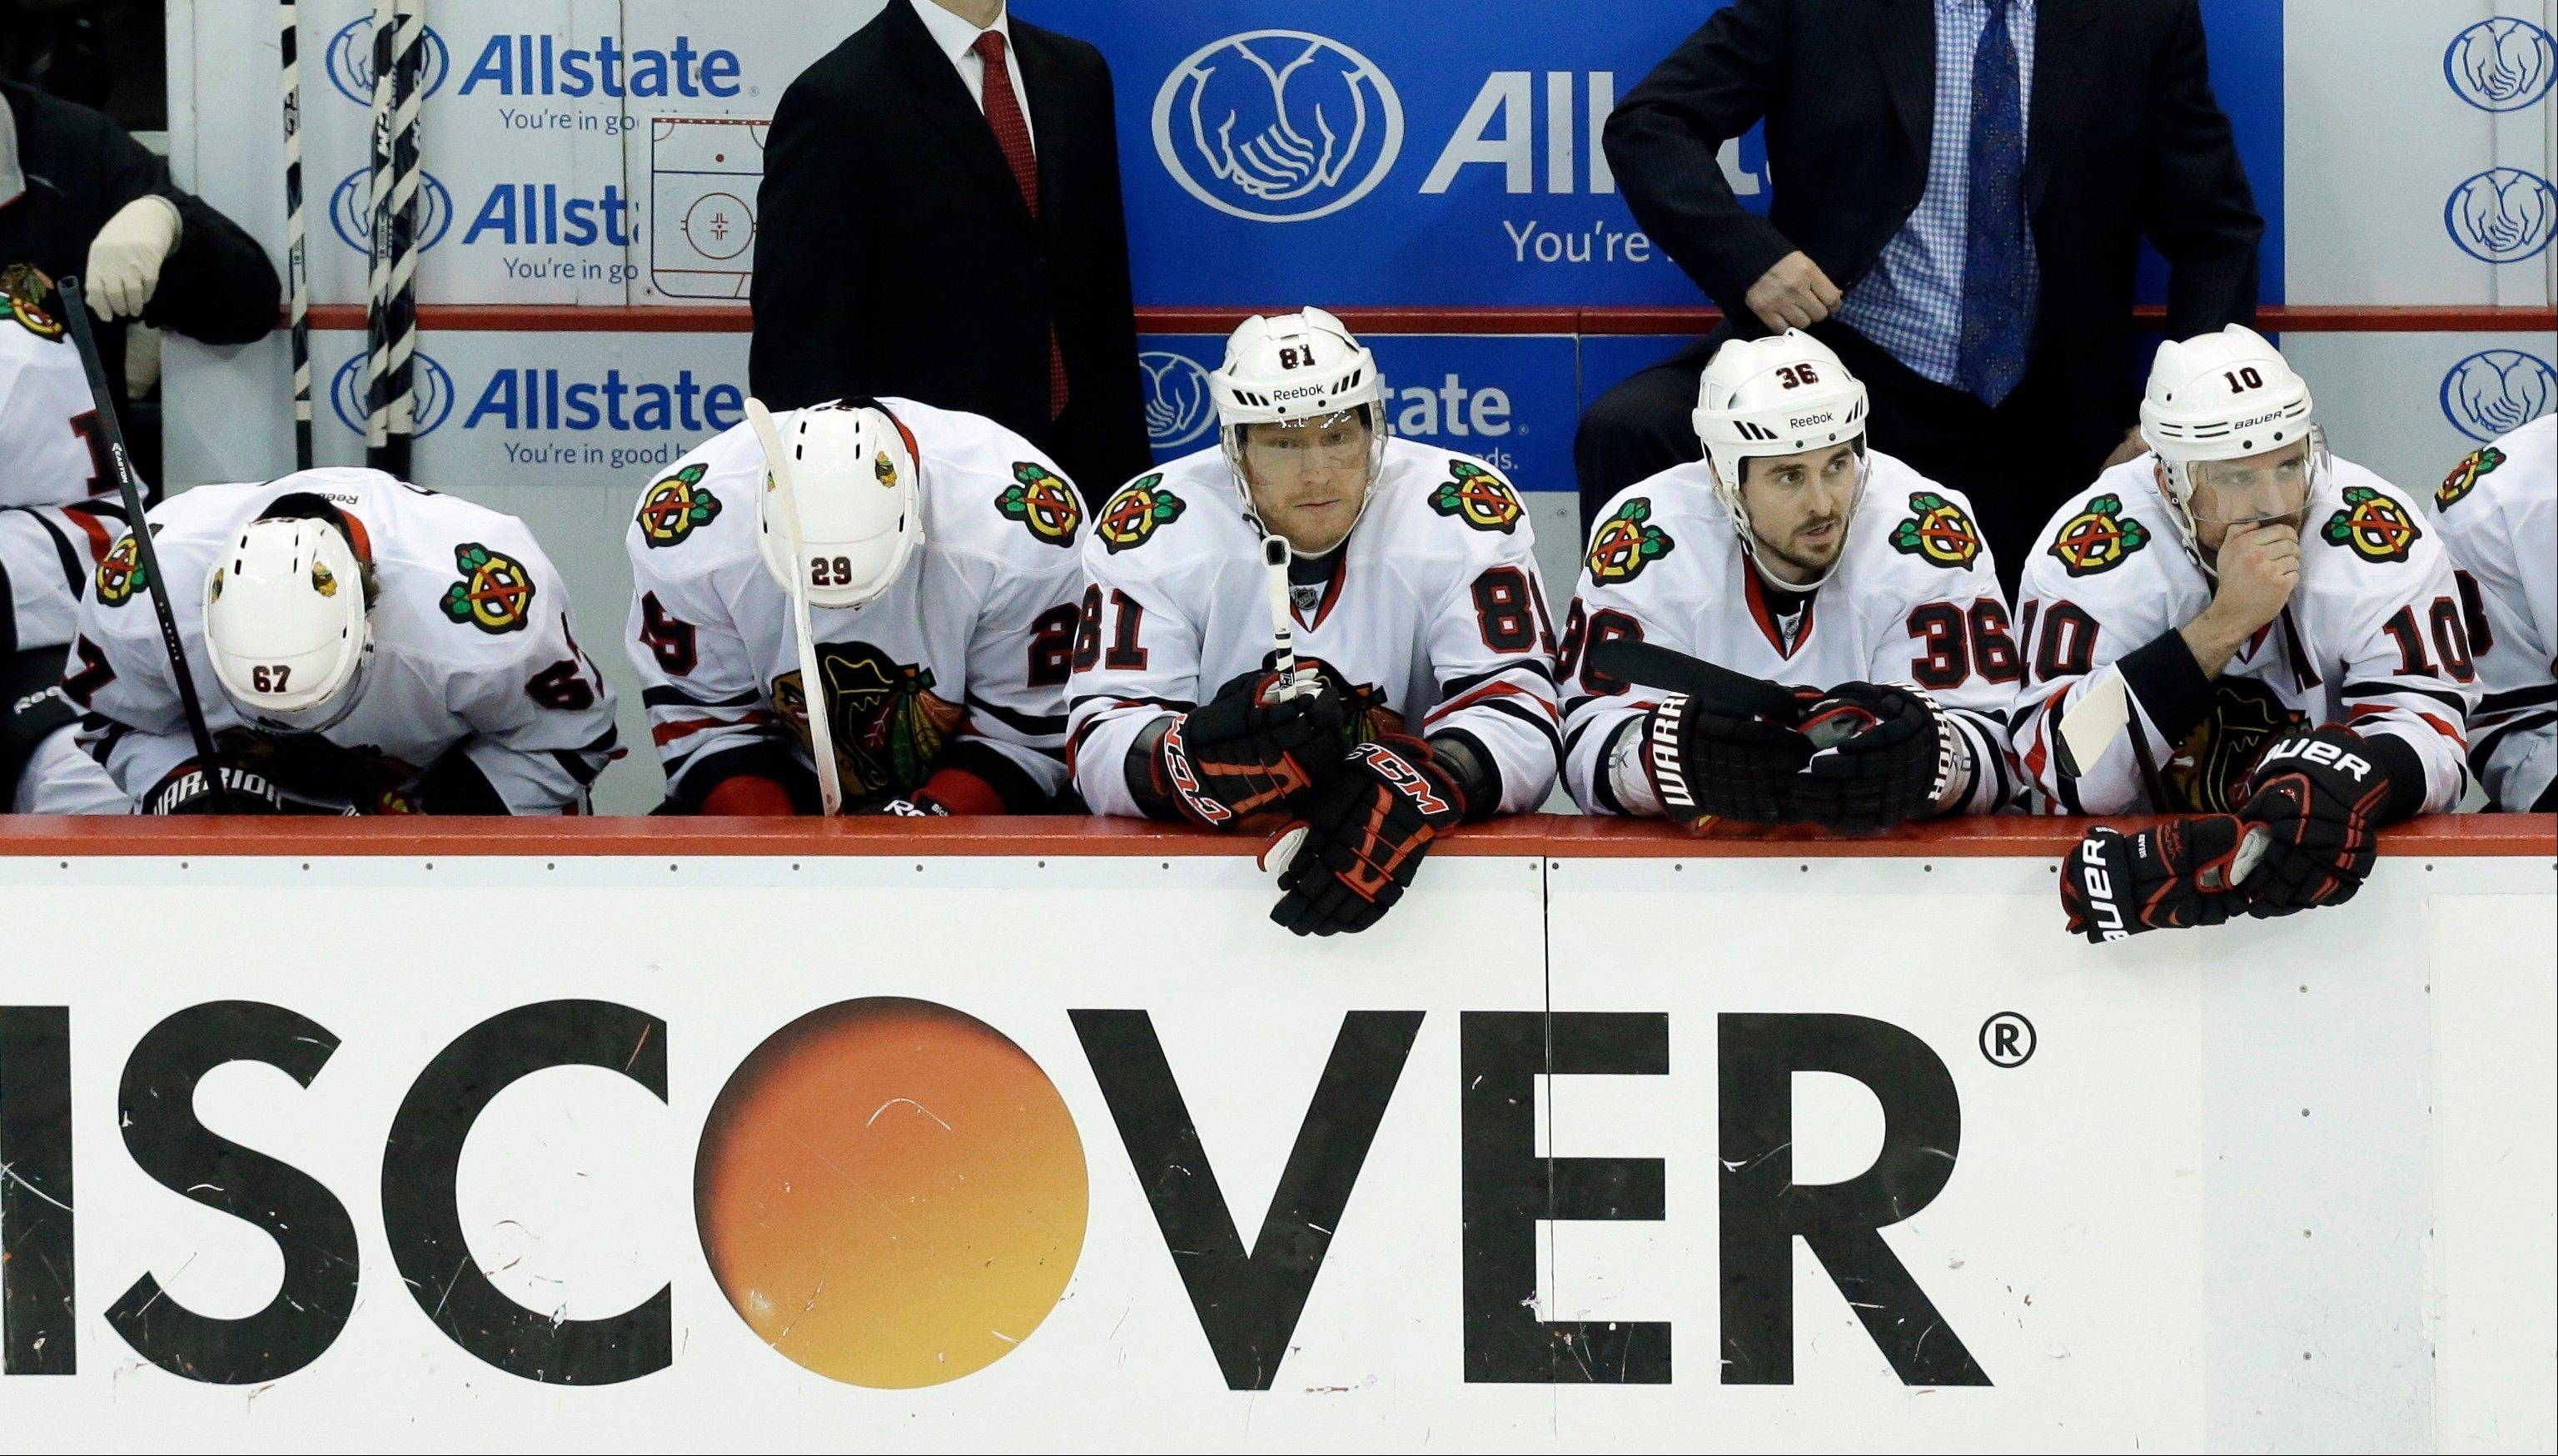 From left to right, Blackhawks Michael Frolik (67), Bryan Bickell (29), Marian Hossa (81), Dave Bolland (36) and Patrick Sharp (10) watch from the bench during Thursday night's Game 4 loss at Detroit. The Hawks are staying positive, knowing that a victory in Saturday night's Game 5 at the United Center could be the start of turning the series around.